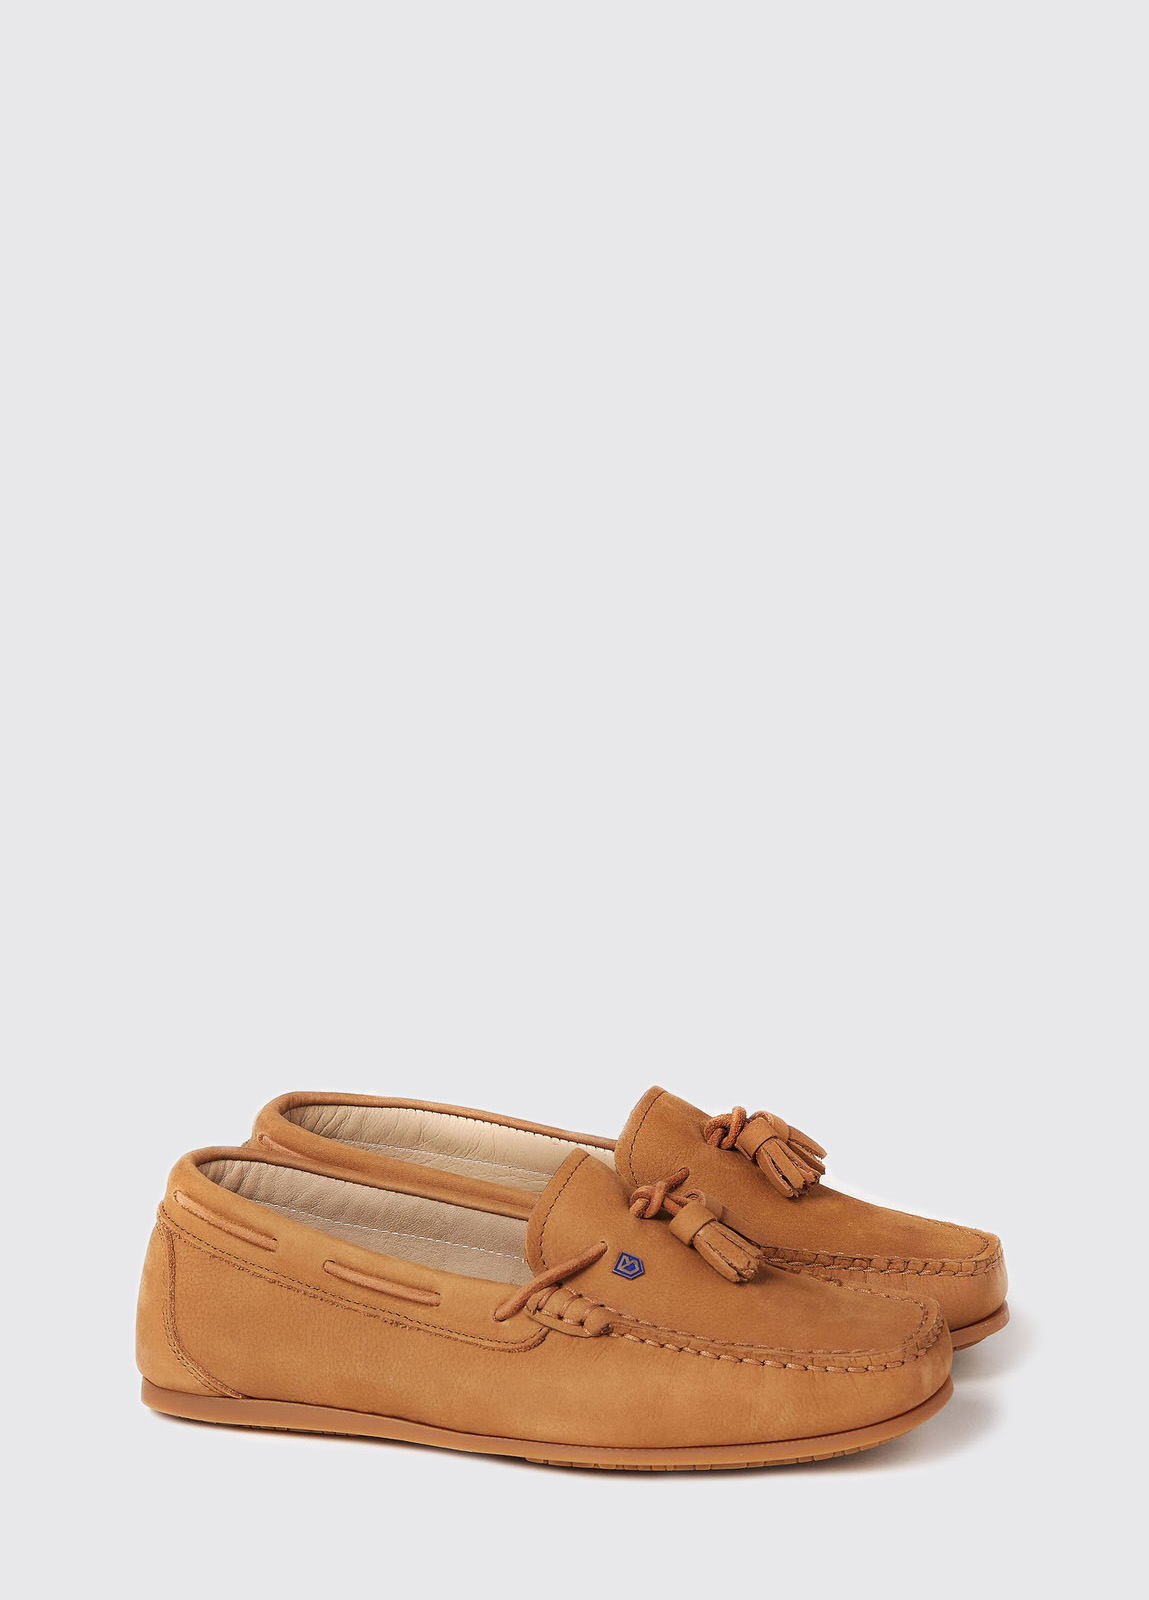 Jamaica Loafer - Tan